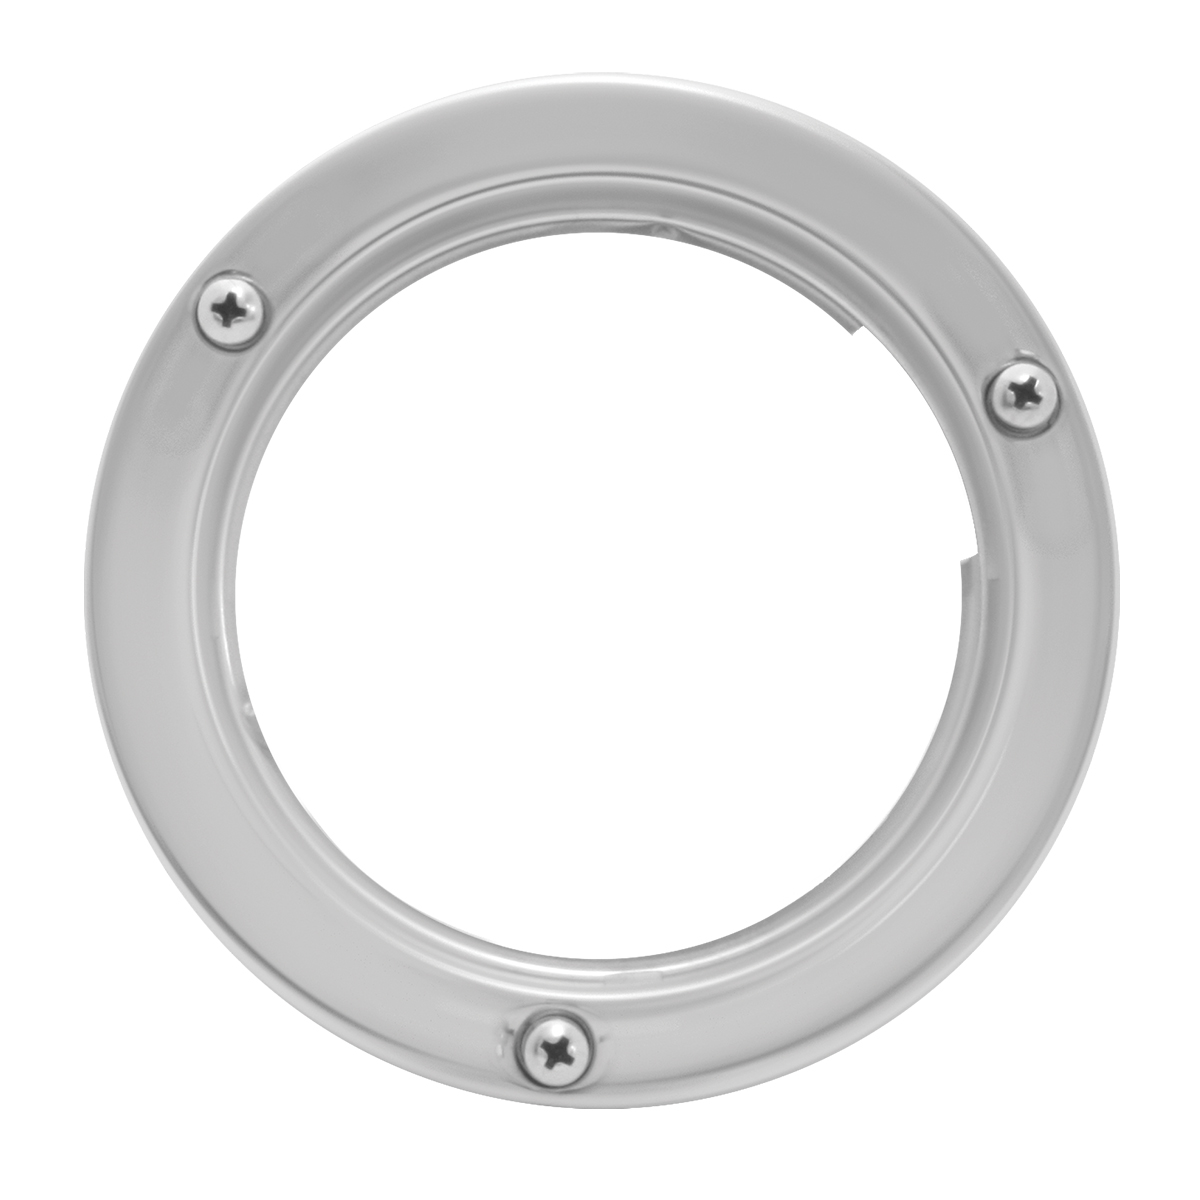 "78279 Stainless Steel Flange Mount Bezel II for 4"" Round Light"